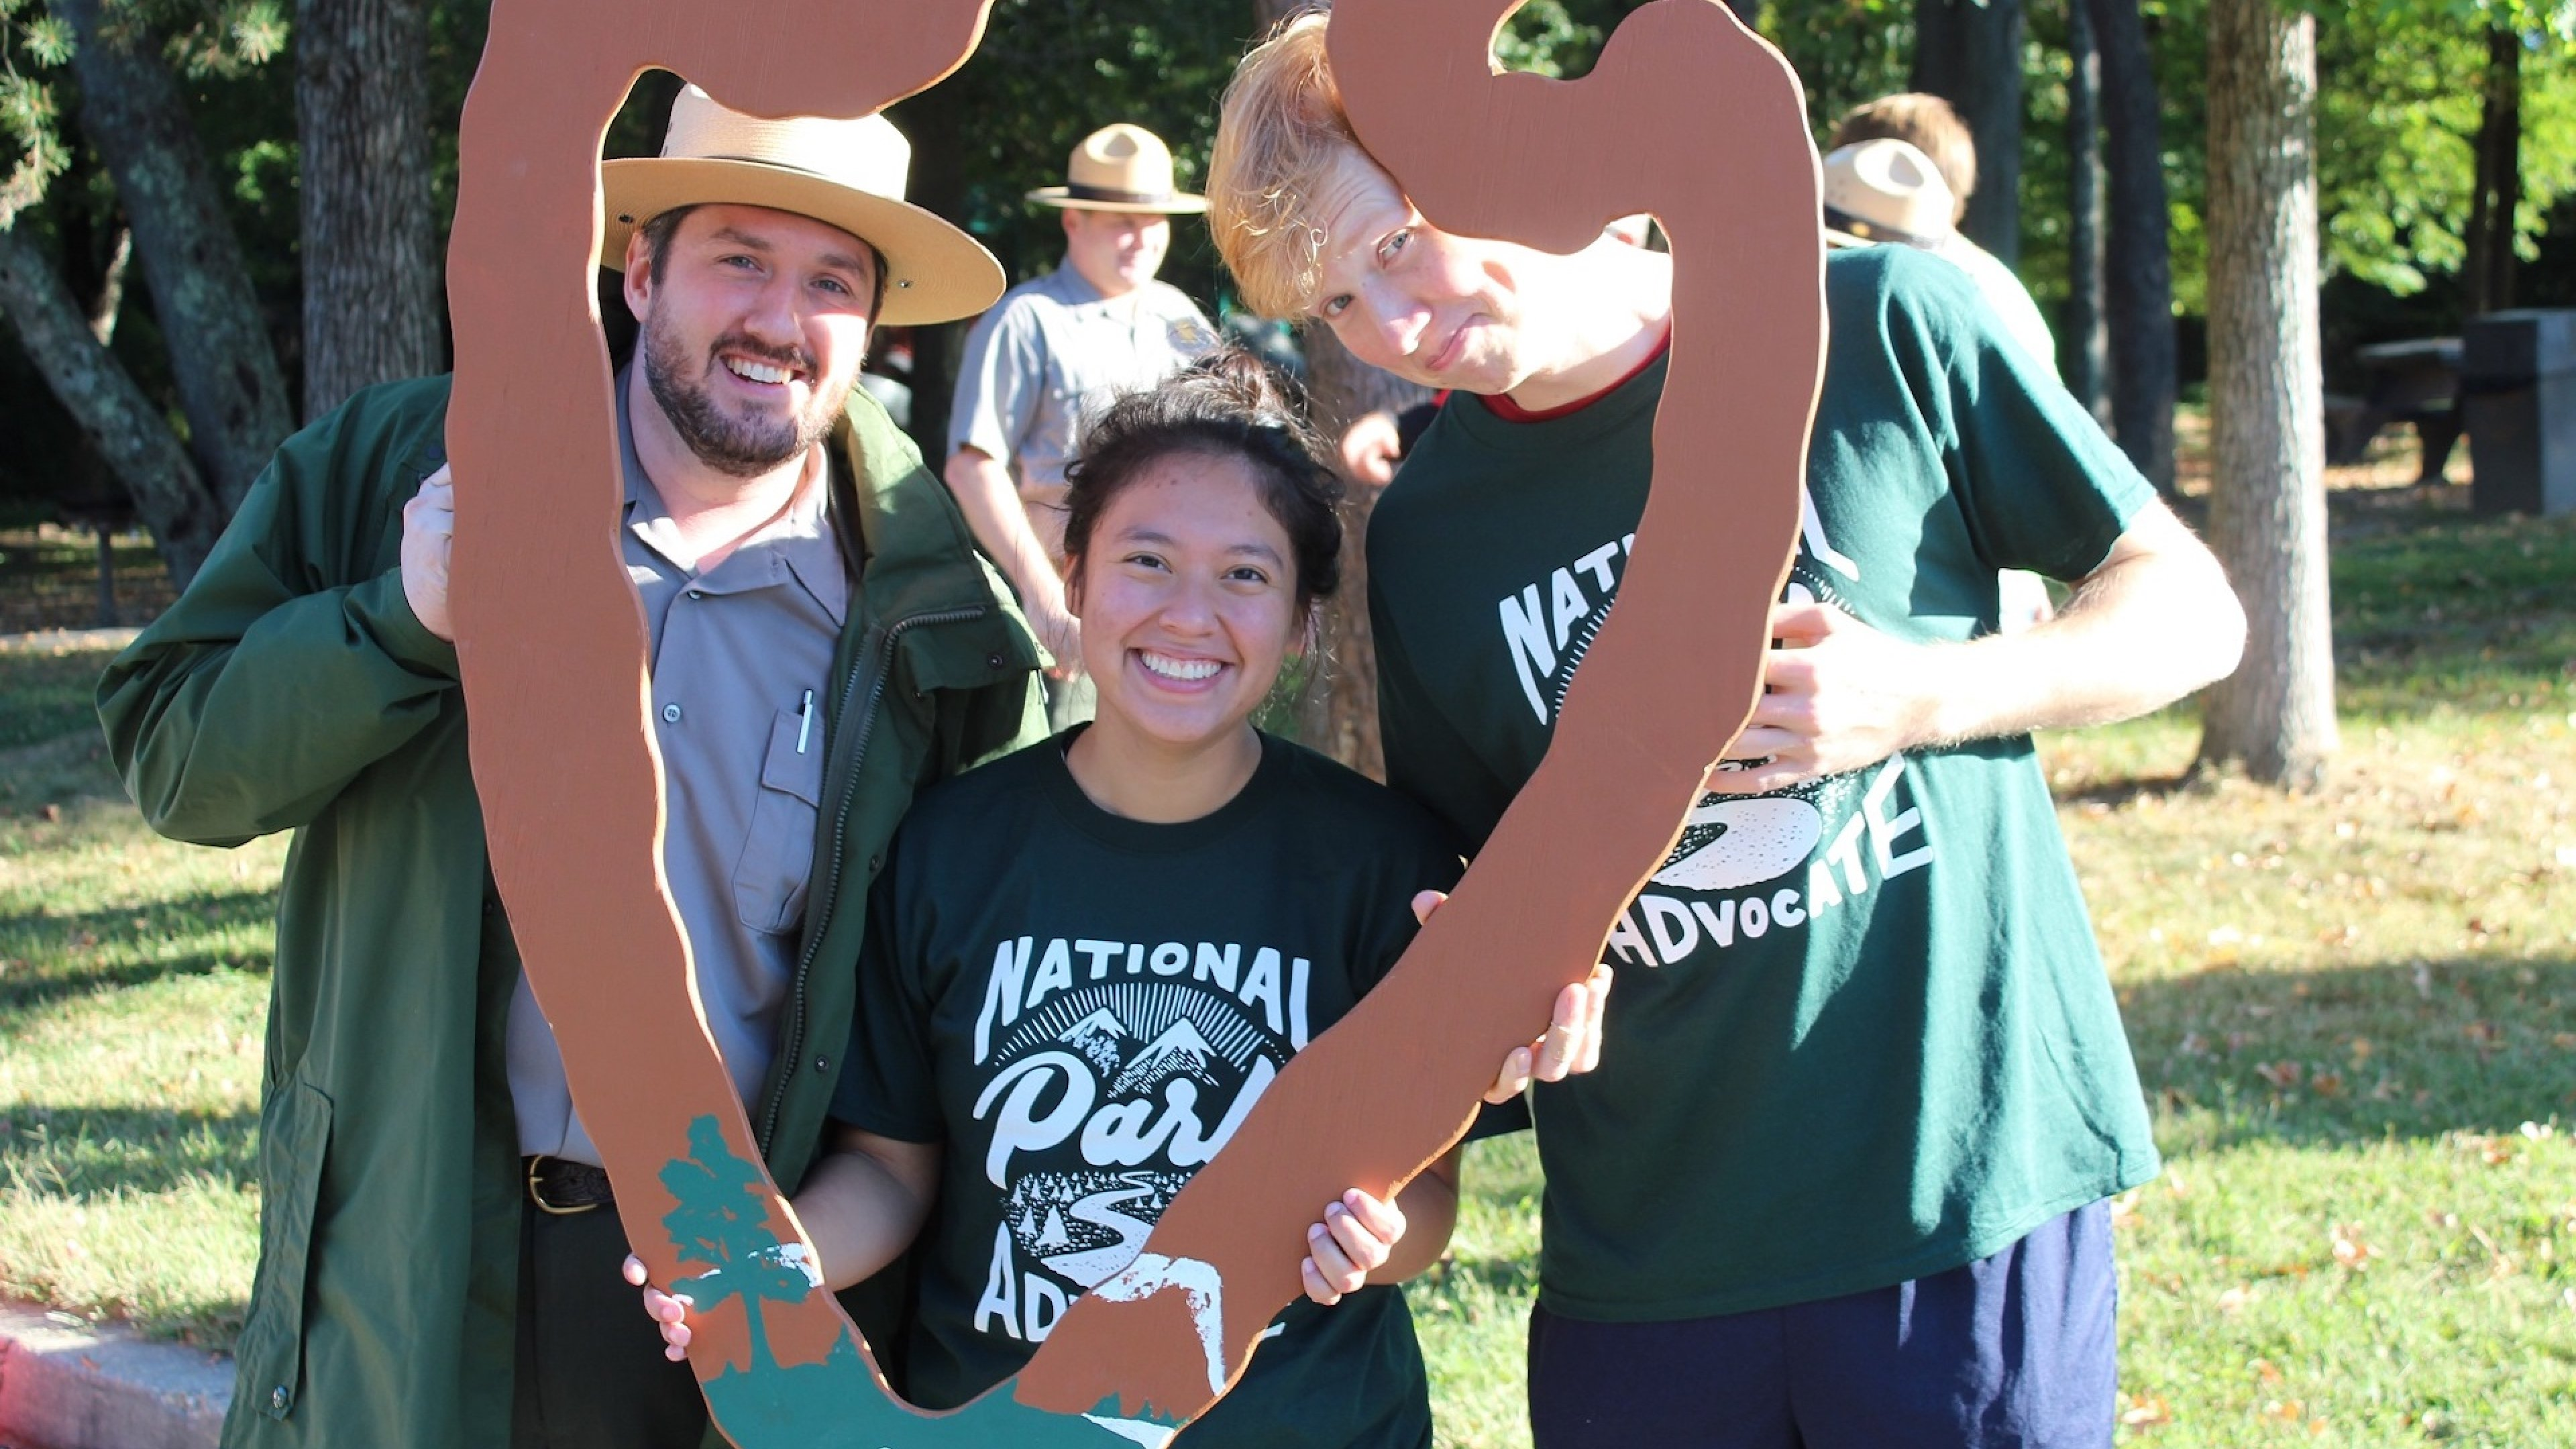 Volunteers for National Public Lands Day at Greenbelt Park posing inside a National Park Service Arrowhead